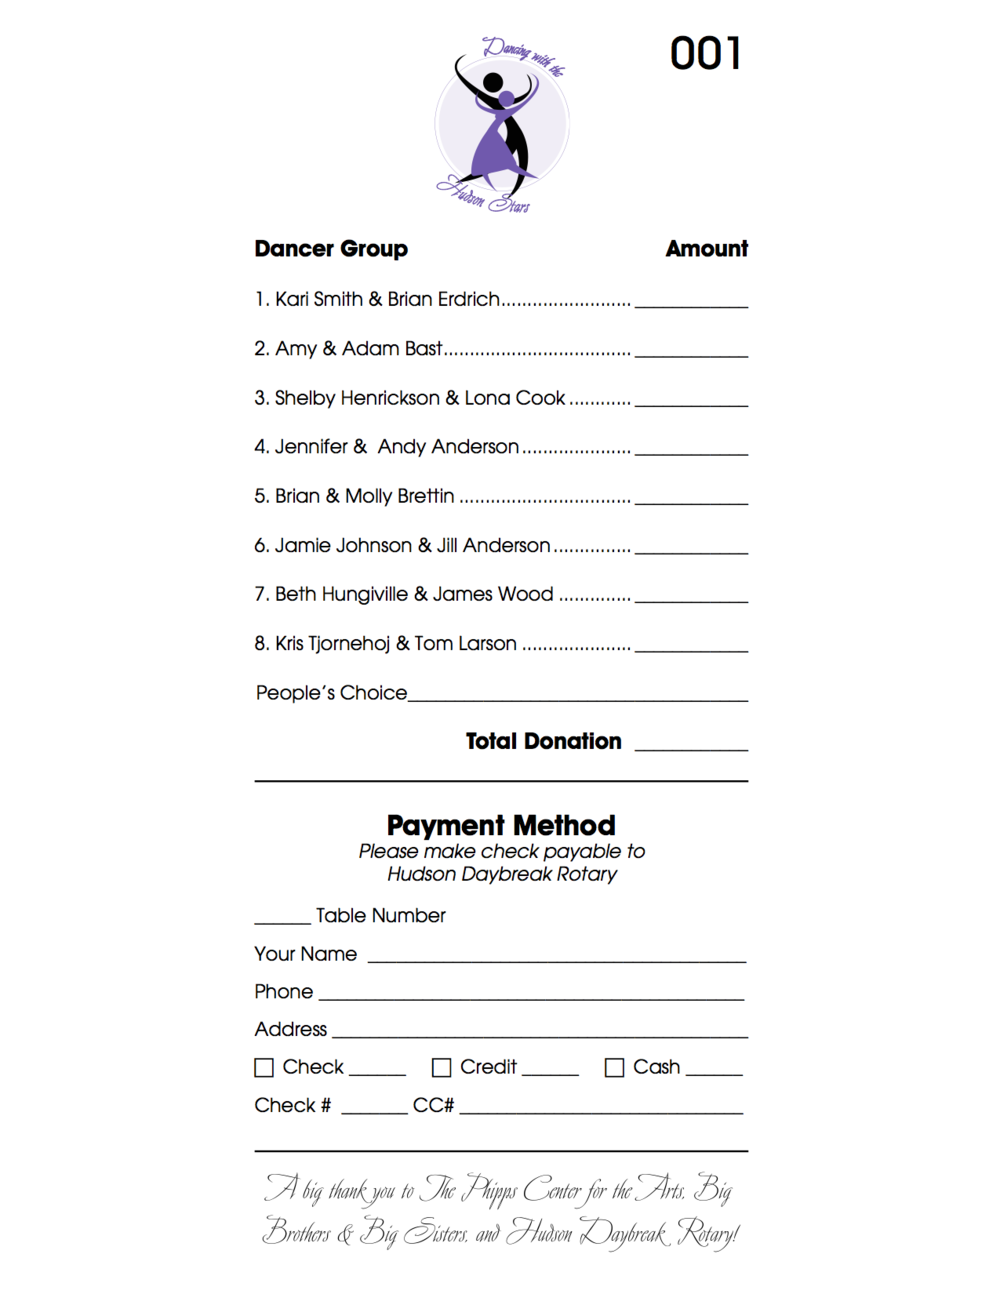 Print this out.... write a check.... and mail in to Hudson Daybreak Rotary or I'll deliver!